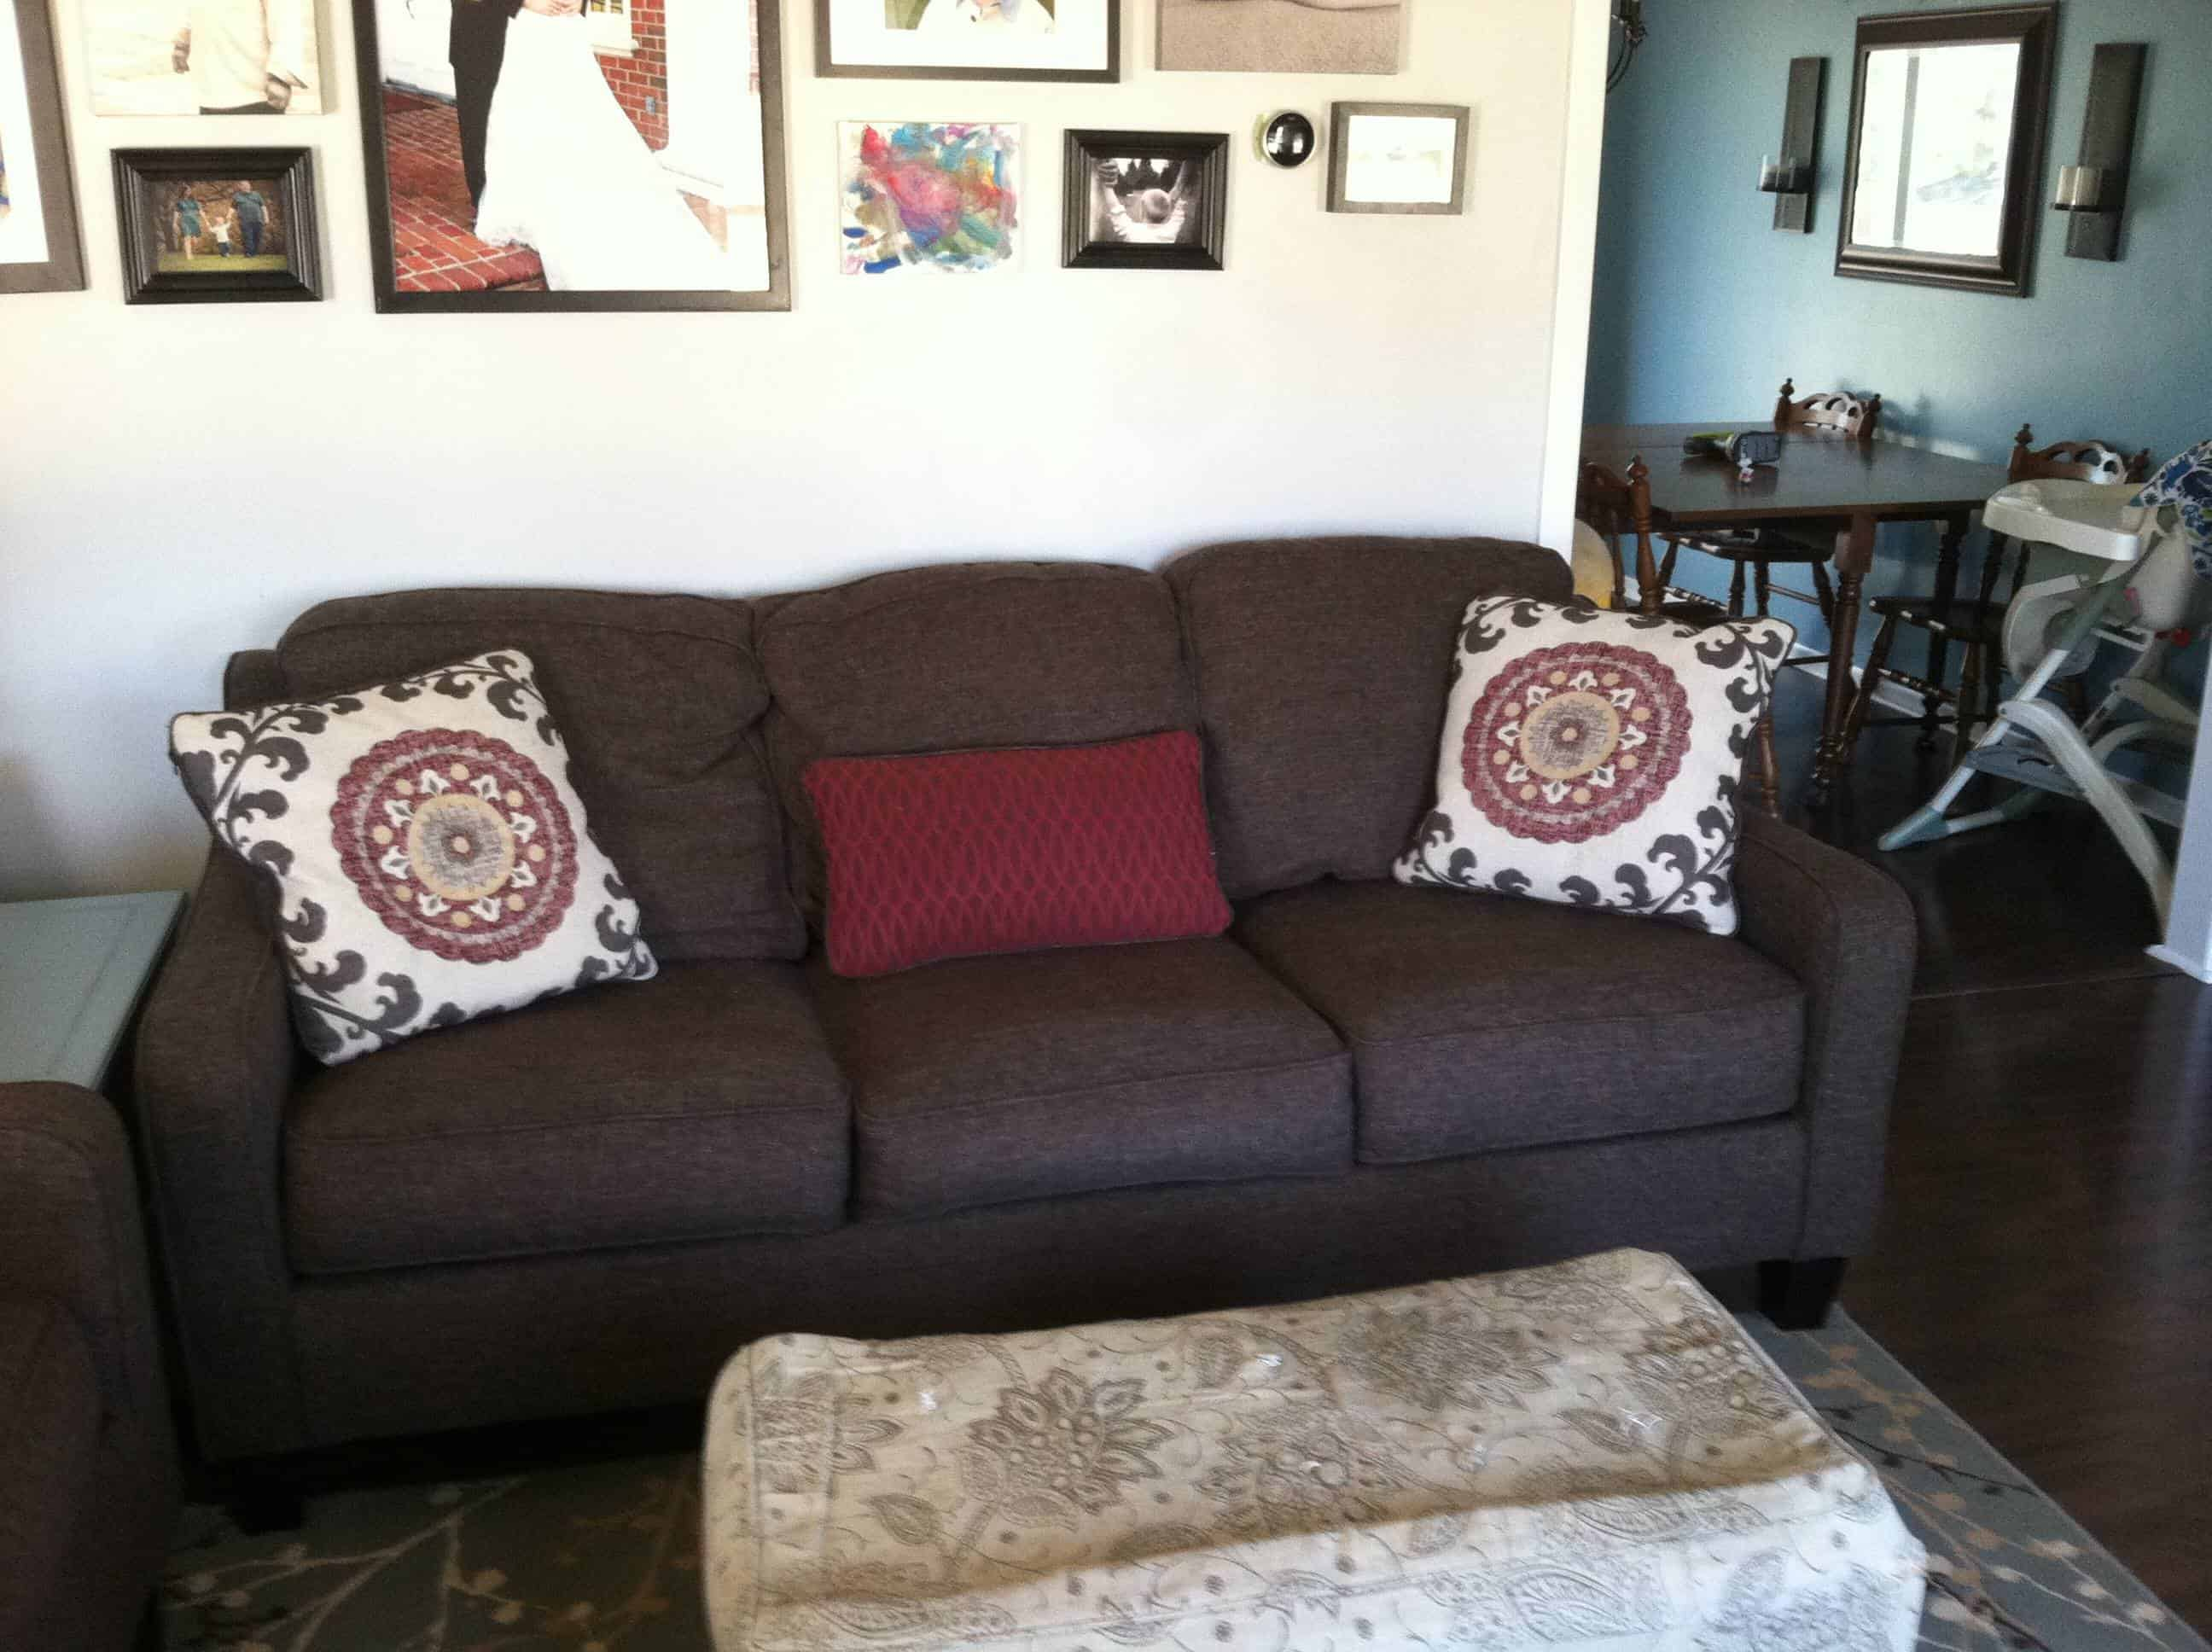 Ashley Furniture Dinelli Sofa & Love Seat Review – Mary